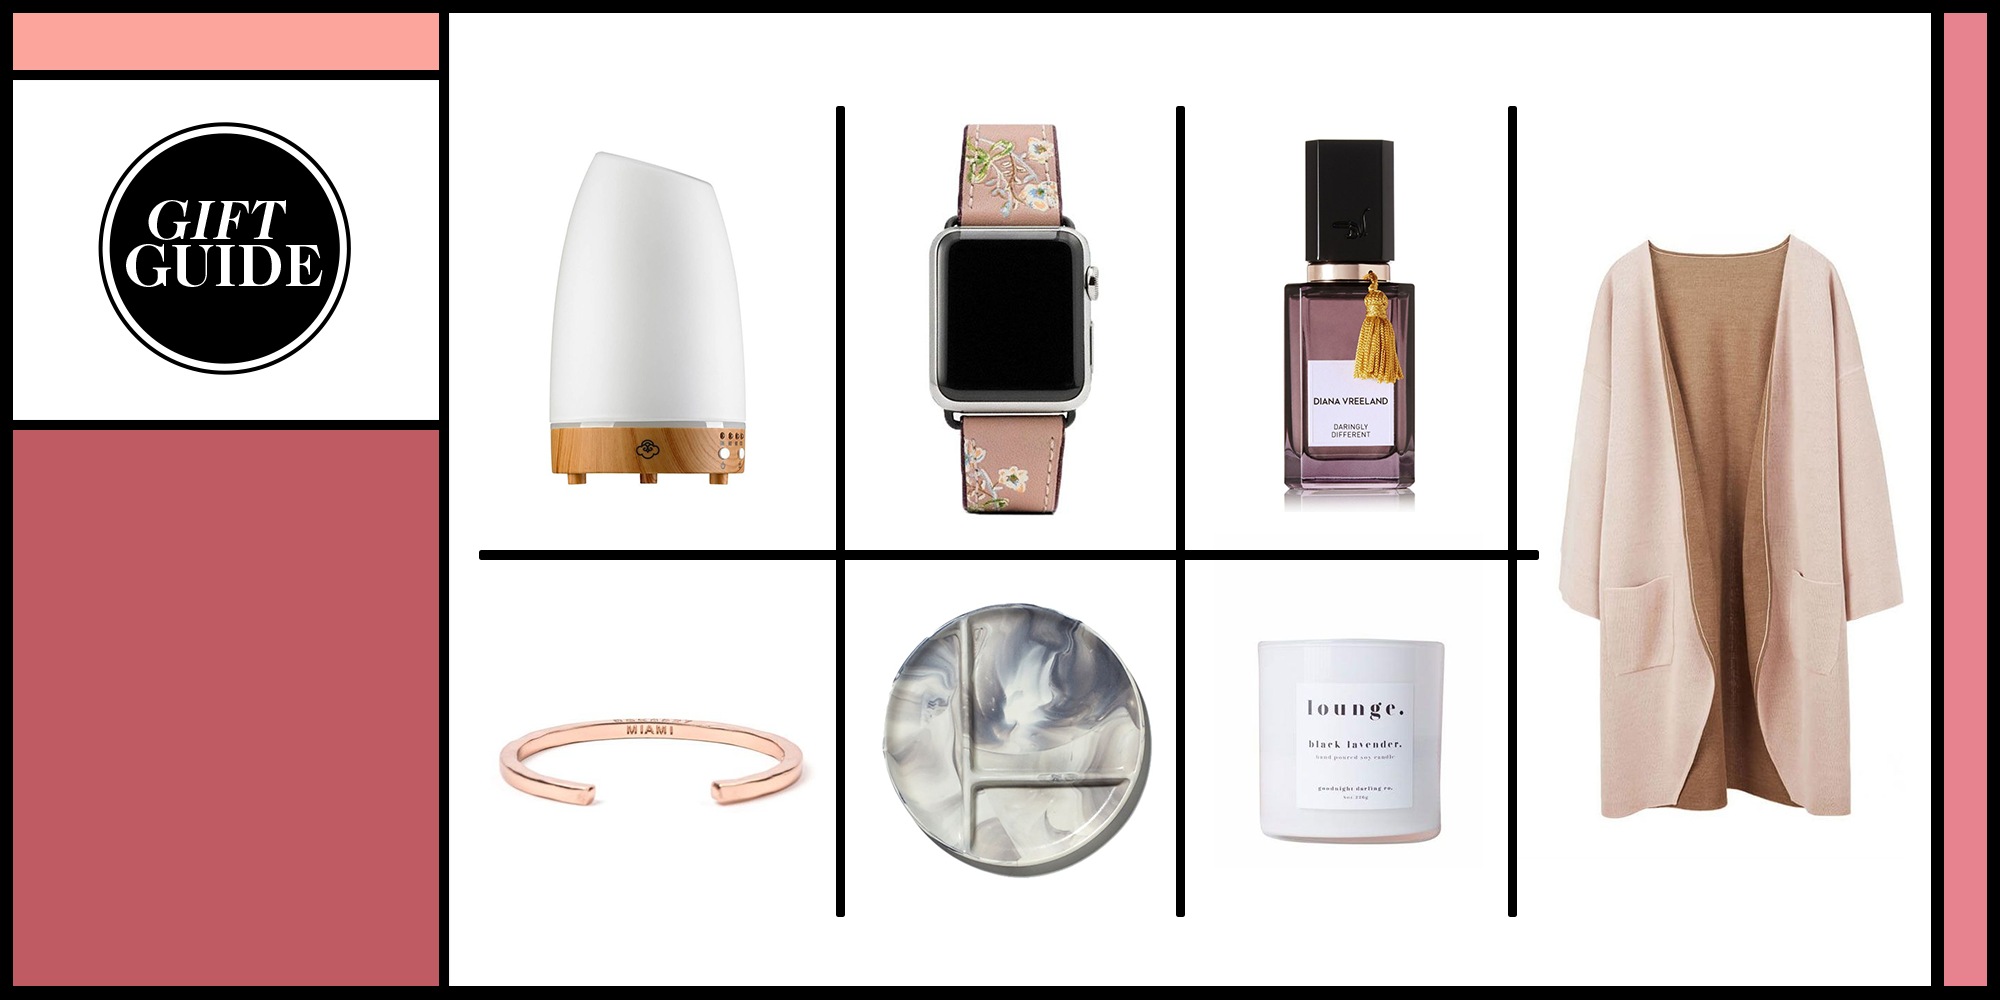 Best Holiday Gift Ideas of 2018 - Gifts We Love for Her and Him